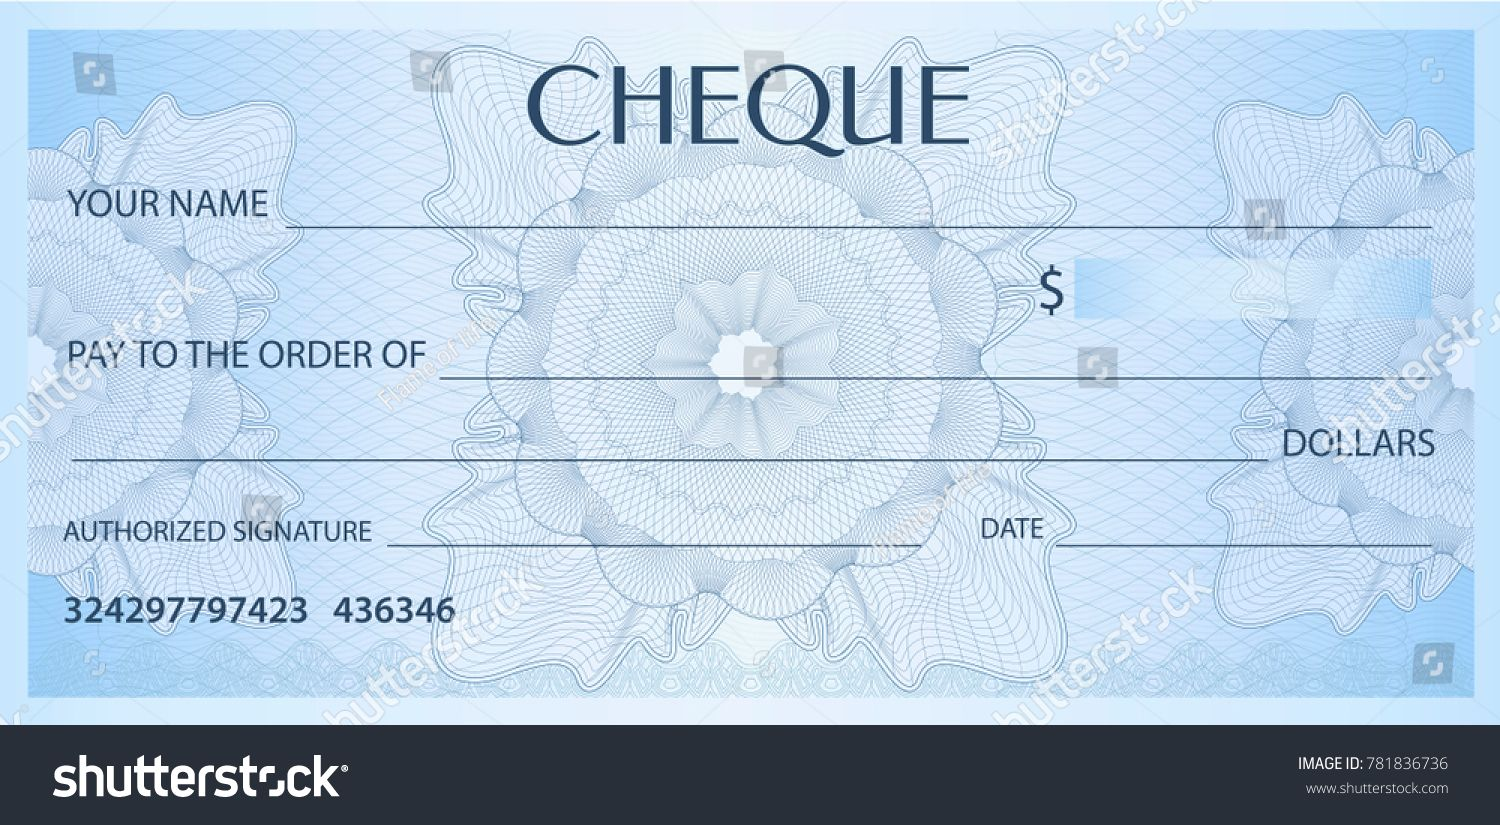 Check Cheque Chequebook Template Guilloche Pattern With